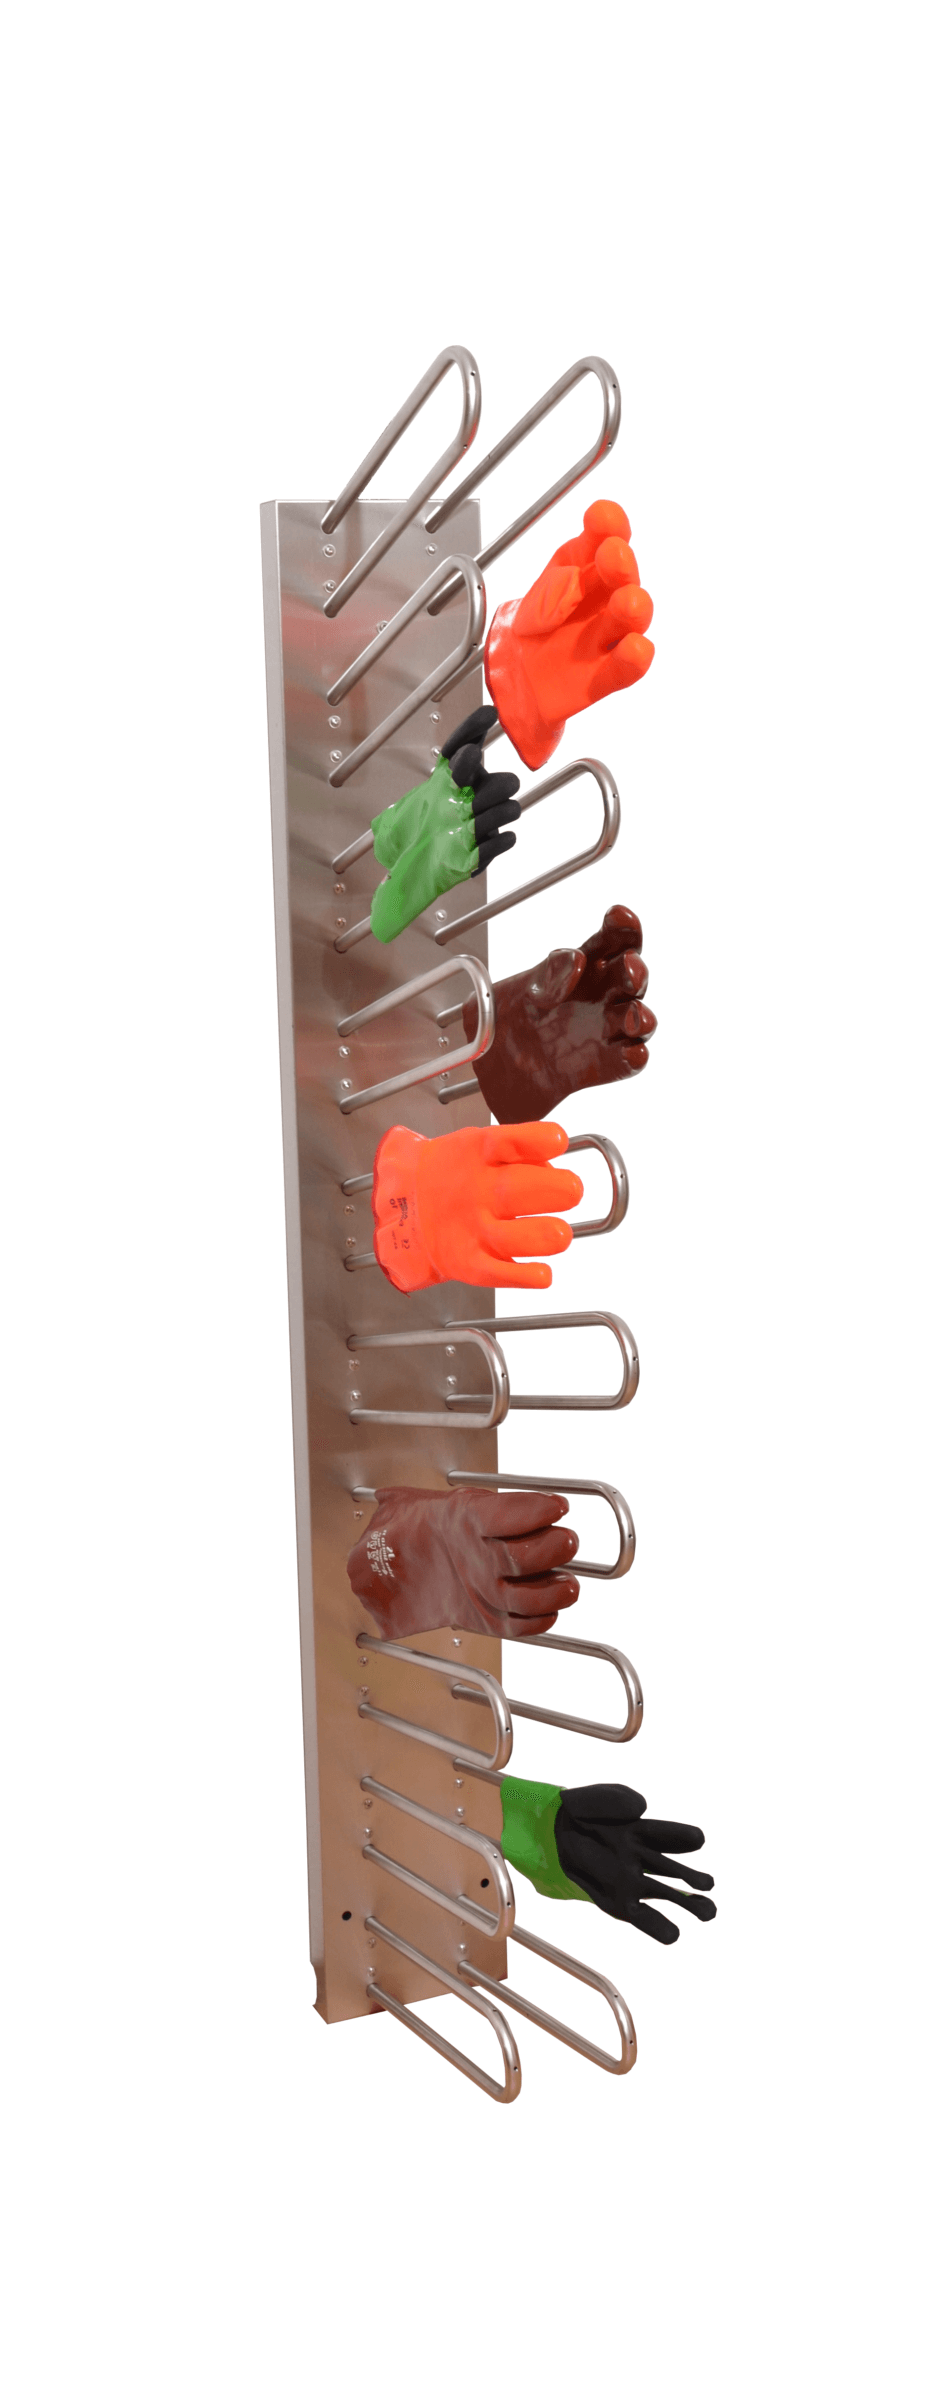 Electrical drying rack for quick drying of gloves